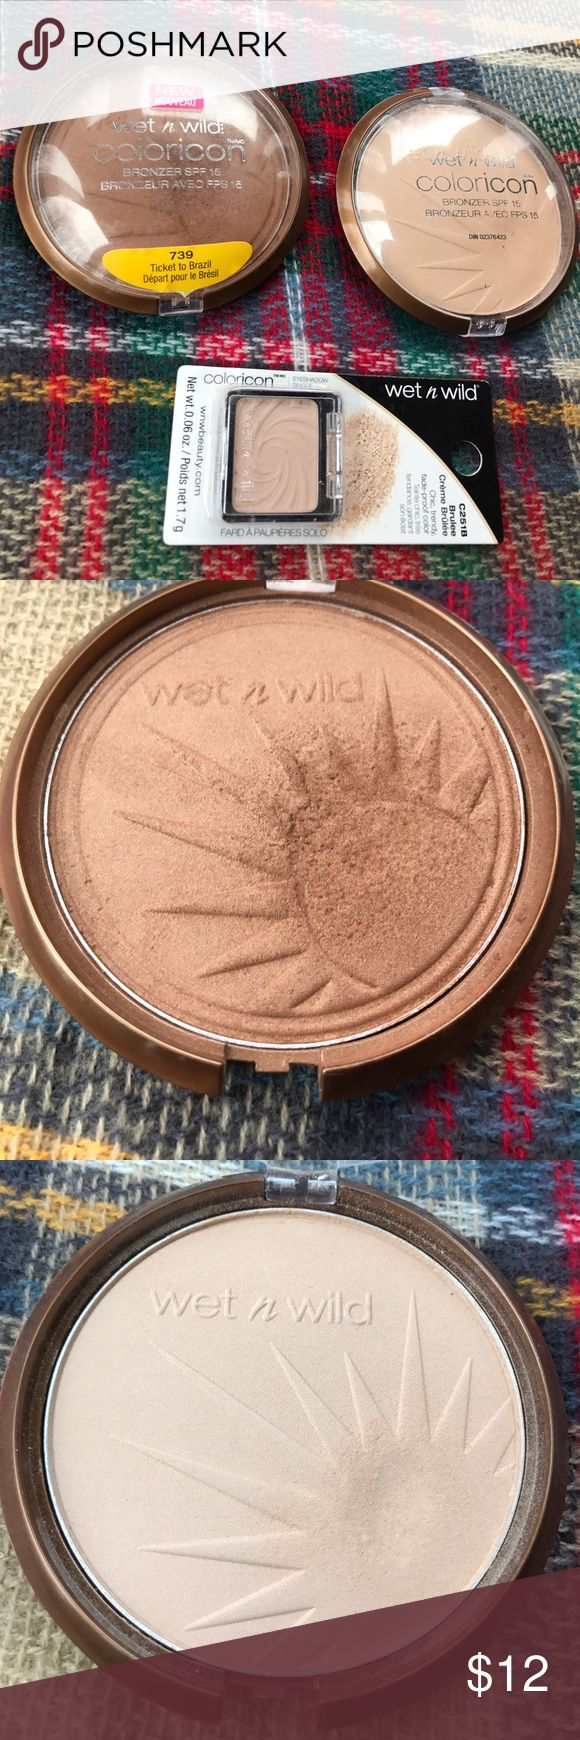 Wet n Wild Color icon bronzers and Brulé eyeshadow Wet n Wild Color icon bronzers SPF 15 (reserve your cabana) (ticket to Brazil ) USED/ brand-new Brule eyeshadow/ comes from a very clean environment and non-smoking home/ thanks for looking Wet n Wild Makeup Bronzer